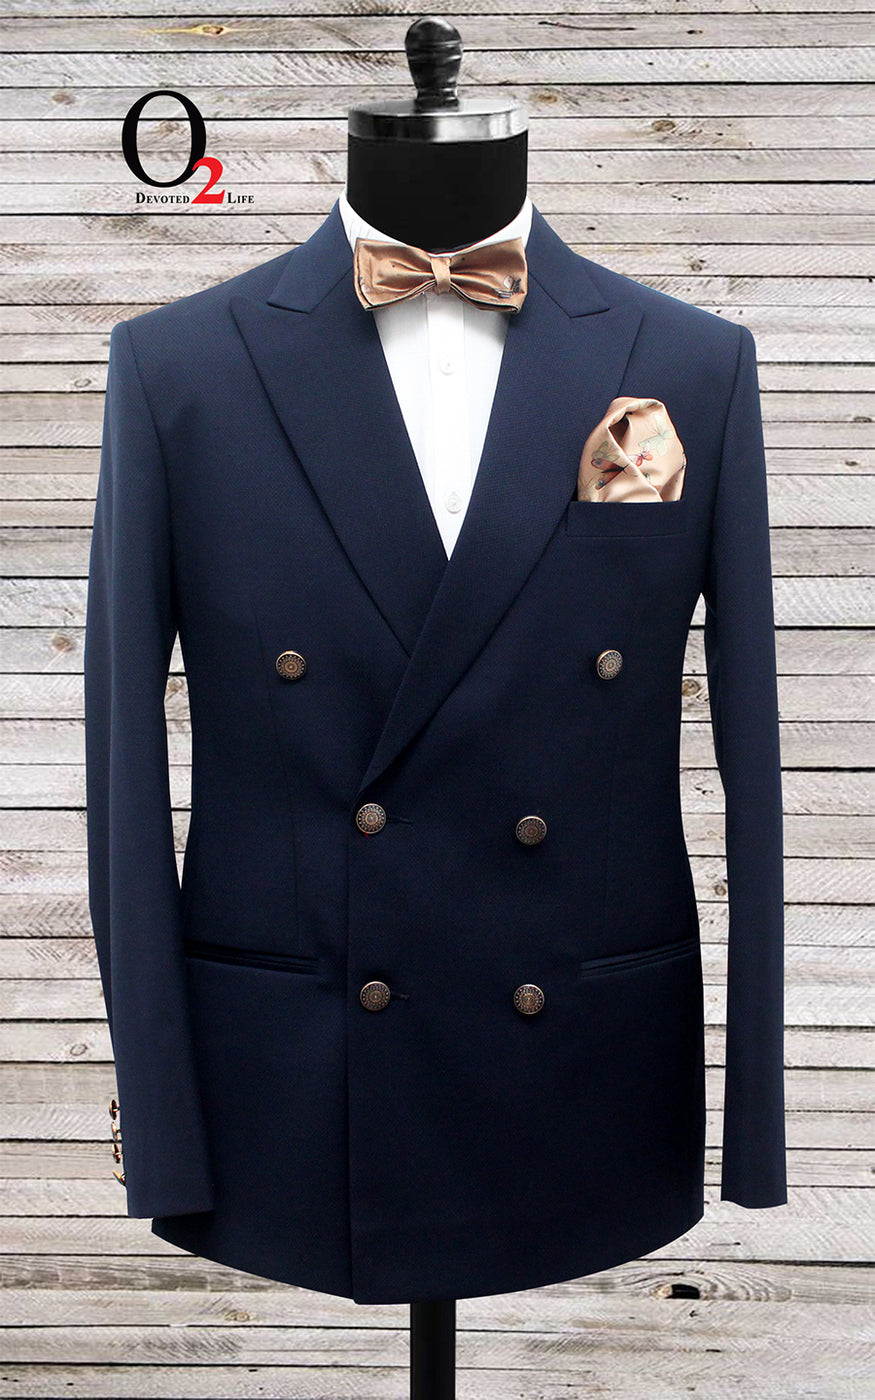 Navy Blue Suited & Booted